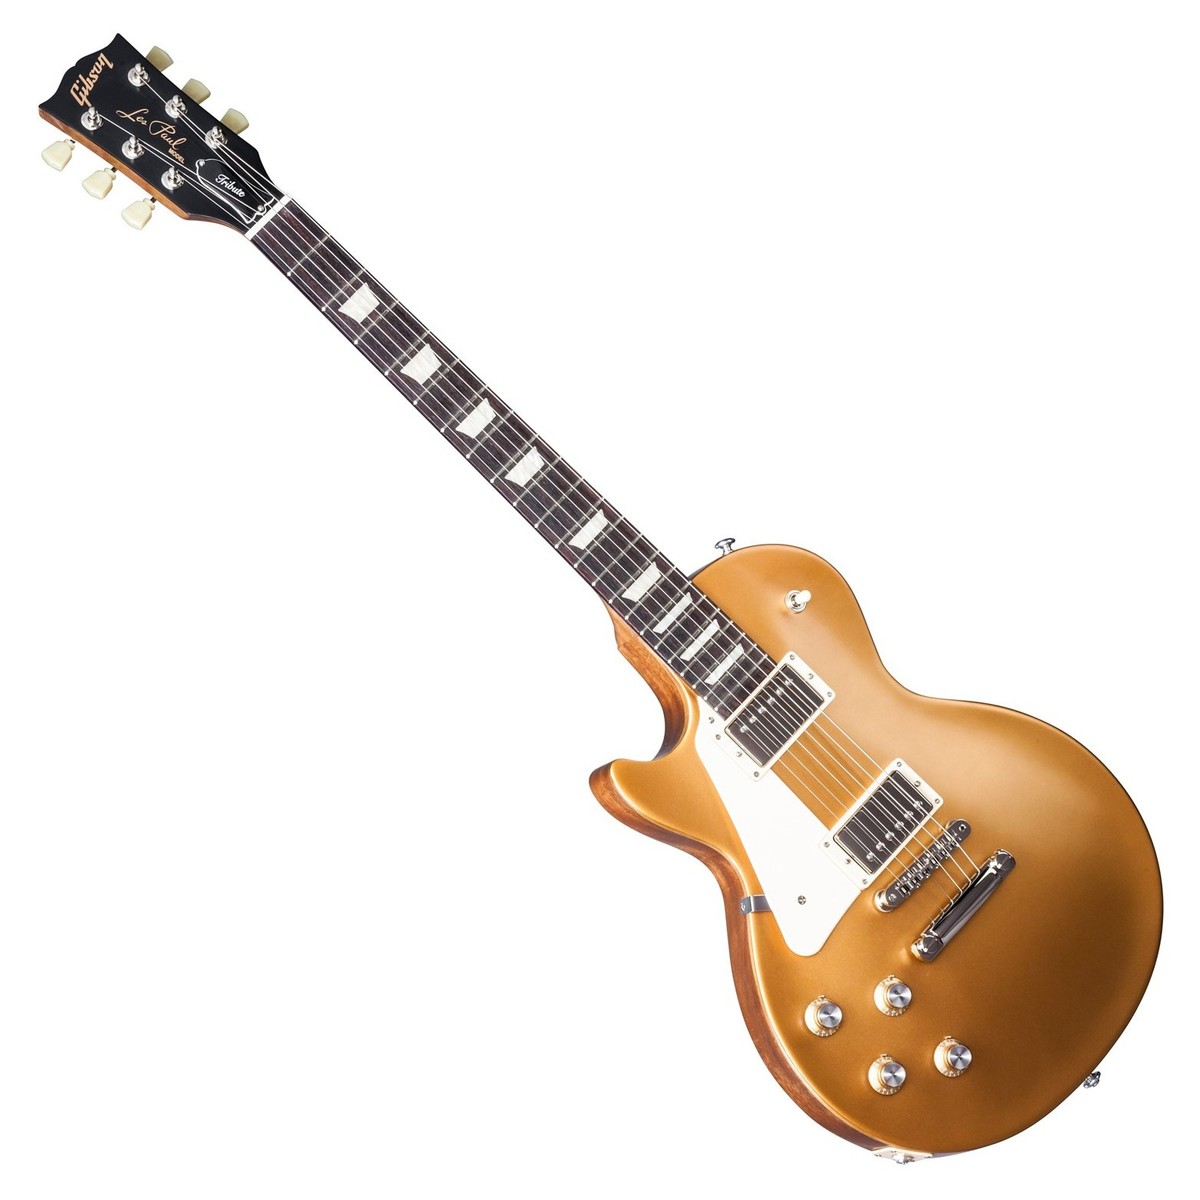 gibson les paul tribute t left handed guitar satin gold top 2017 at gear4music. Black Bedroom Furniture Sets. Home Design Ideas